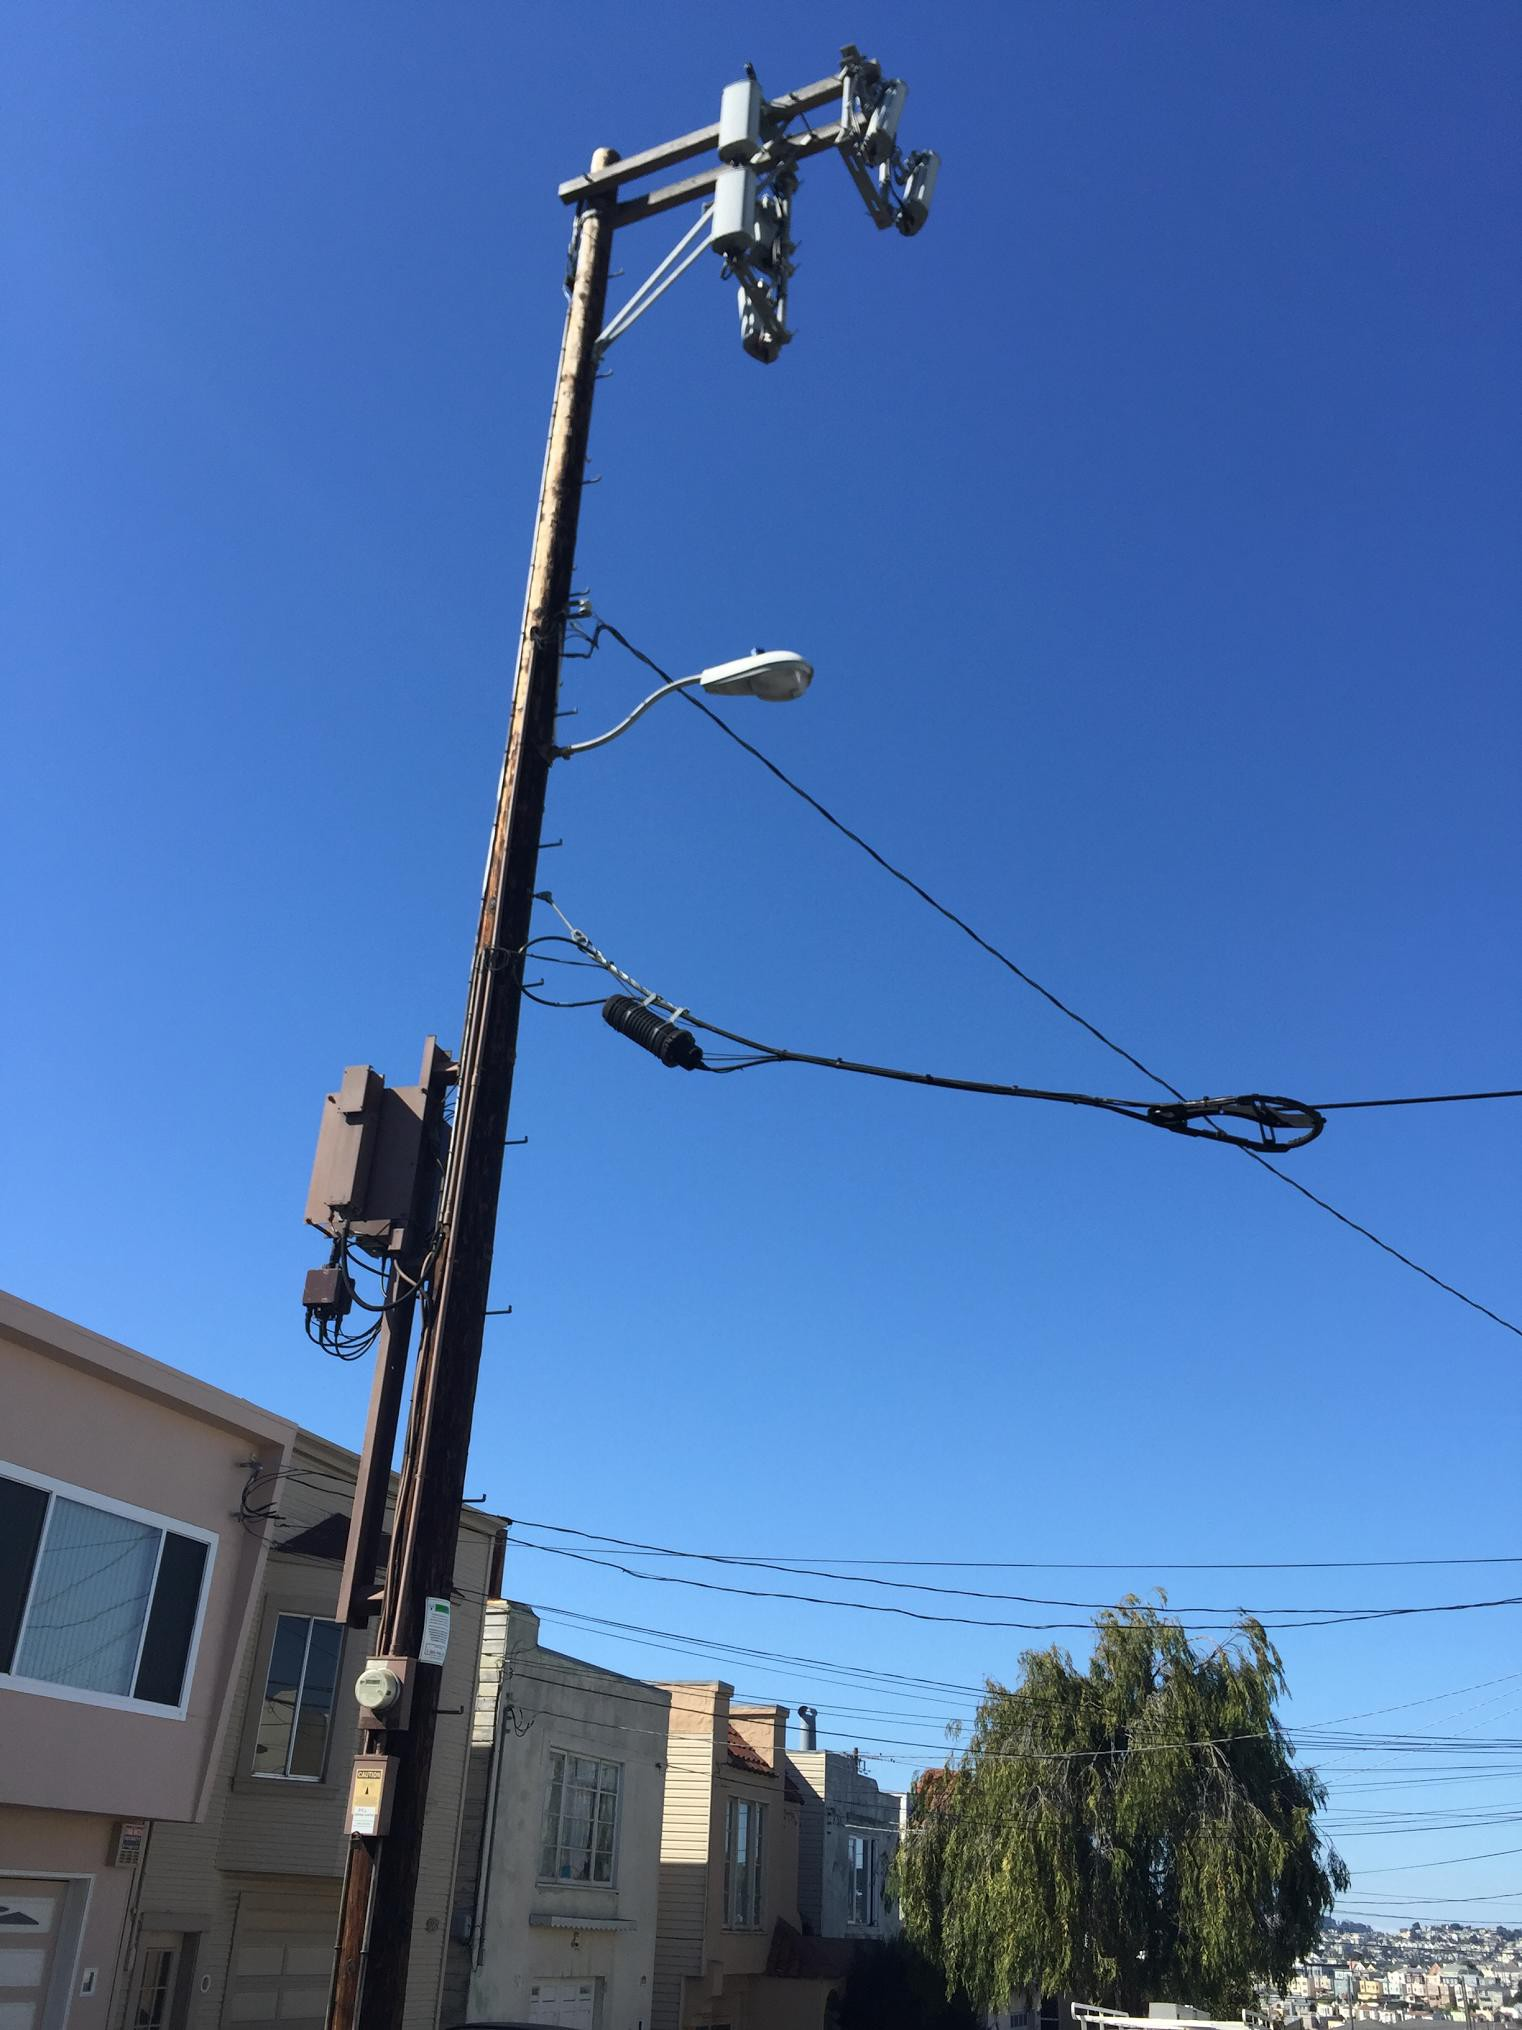 Small Cement Pole : Part design tips for small cells based on pole or